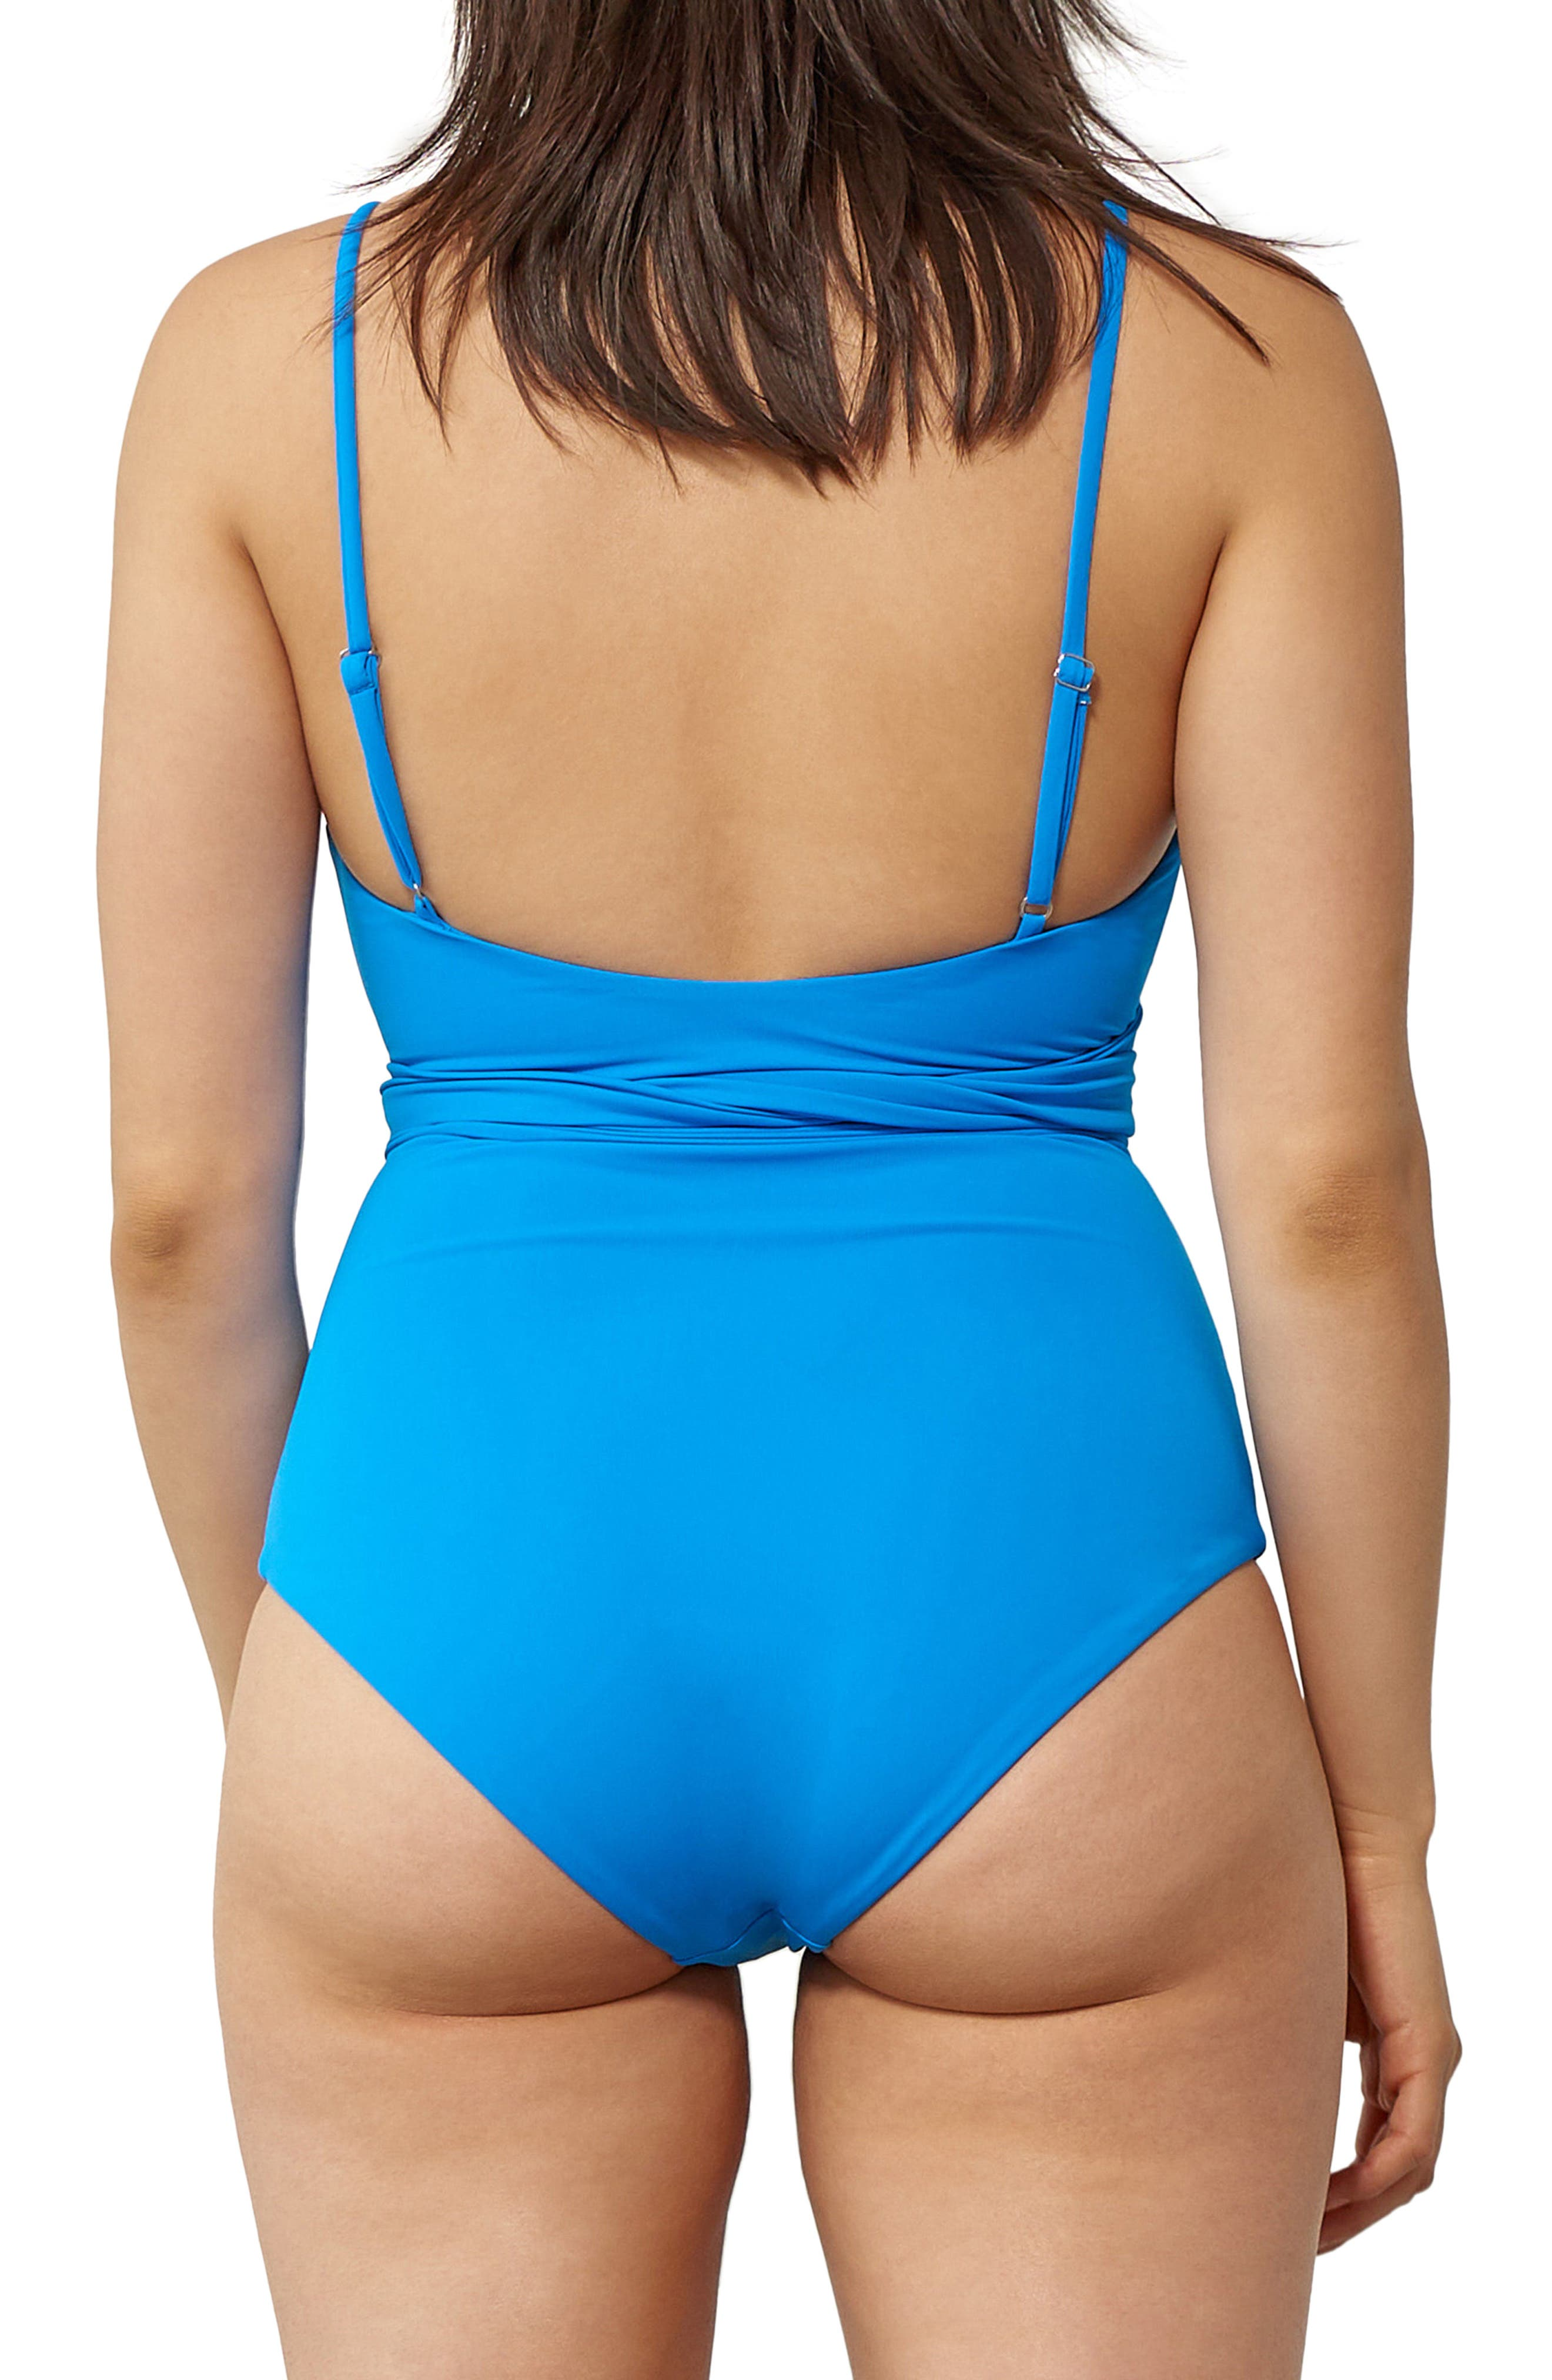 Isolde Tie Front One-Piece Swimsuit,                             Alternate thumbnail 2, color,                             400